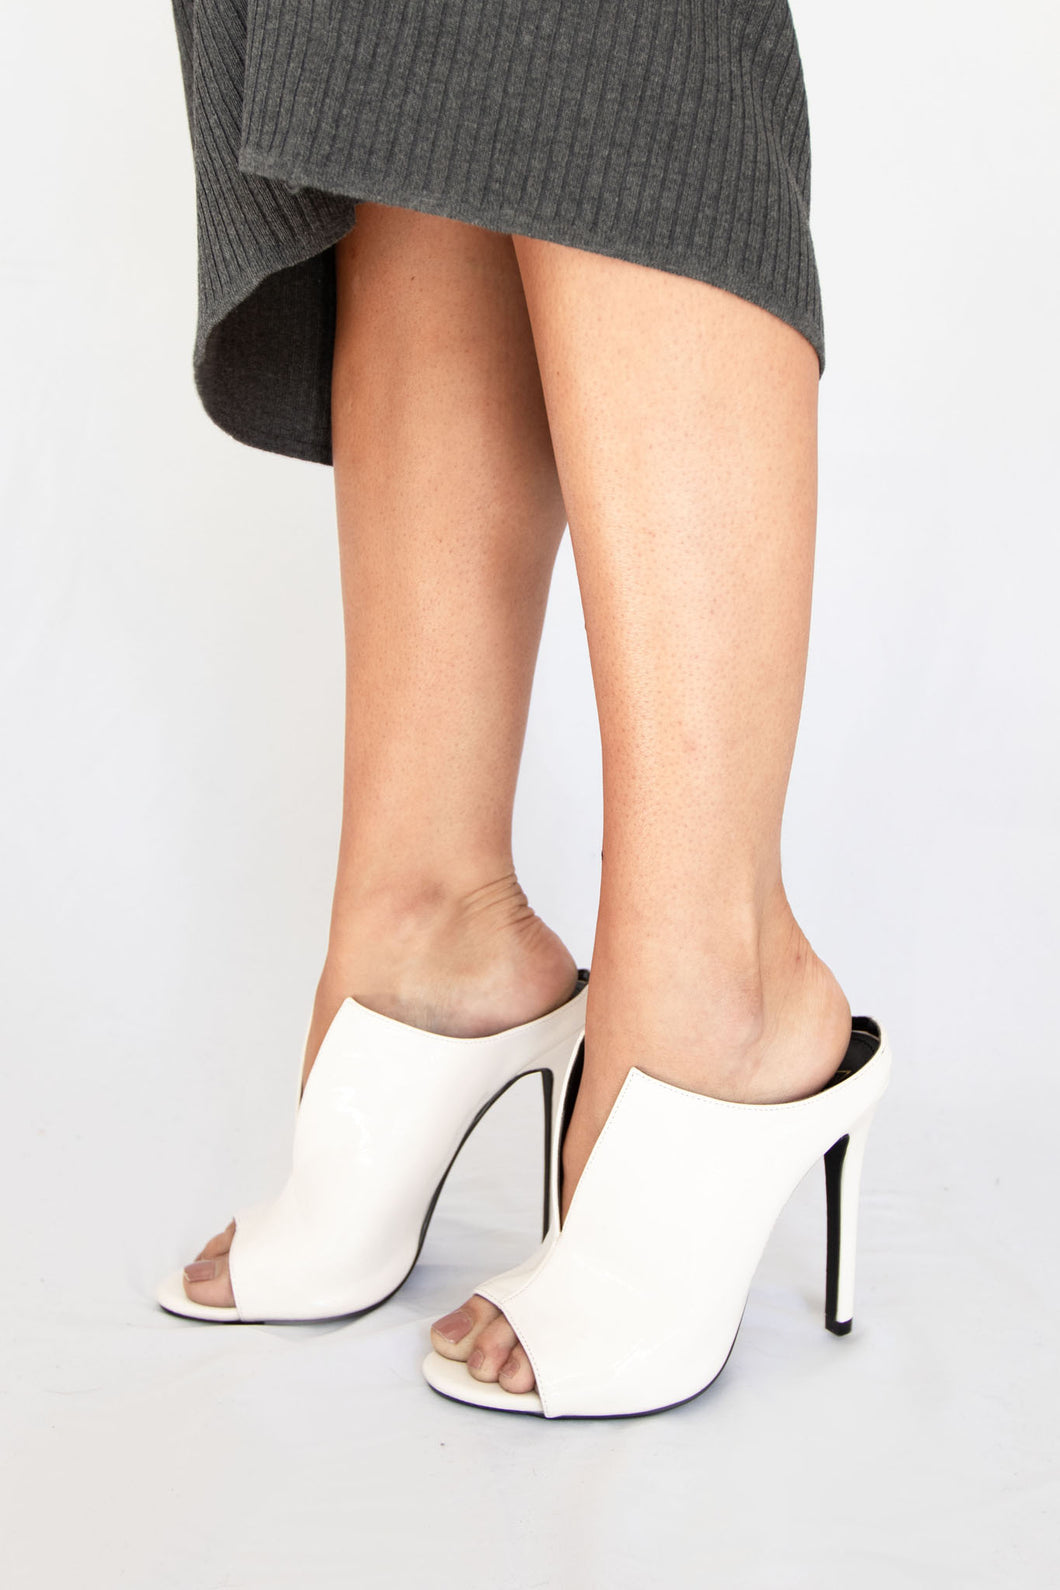 CEO Peep Toe Stiletto High Heel Sandals - White